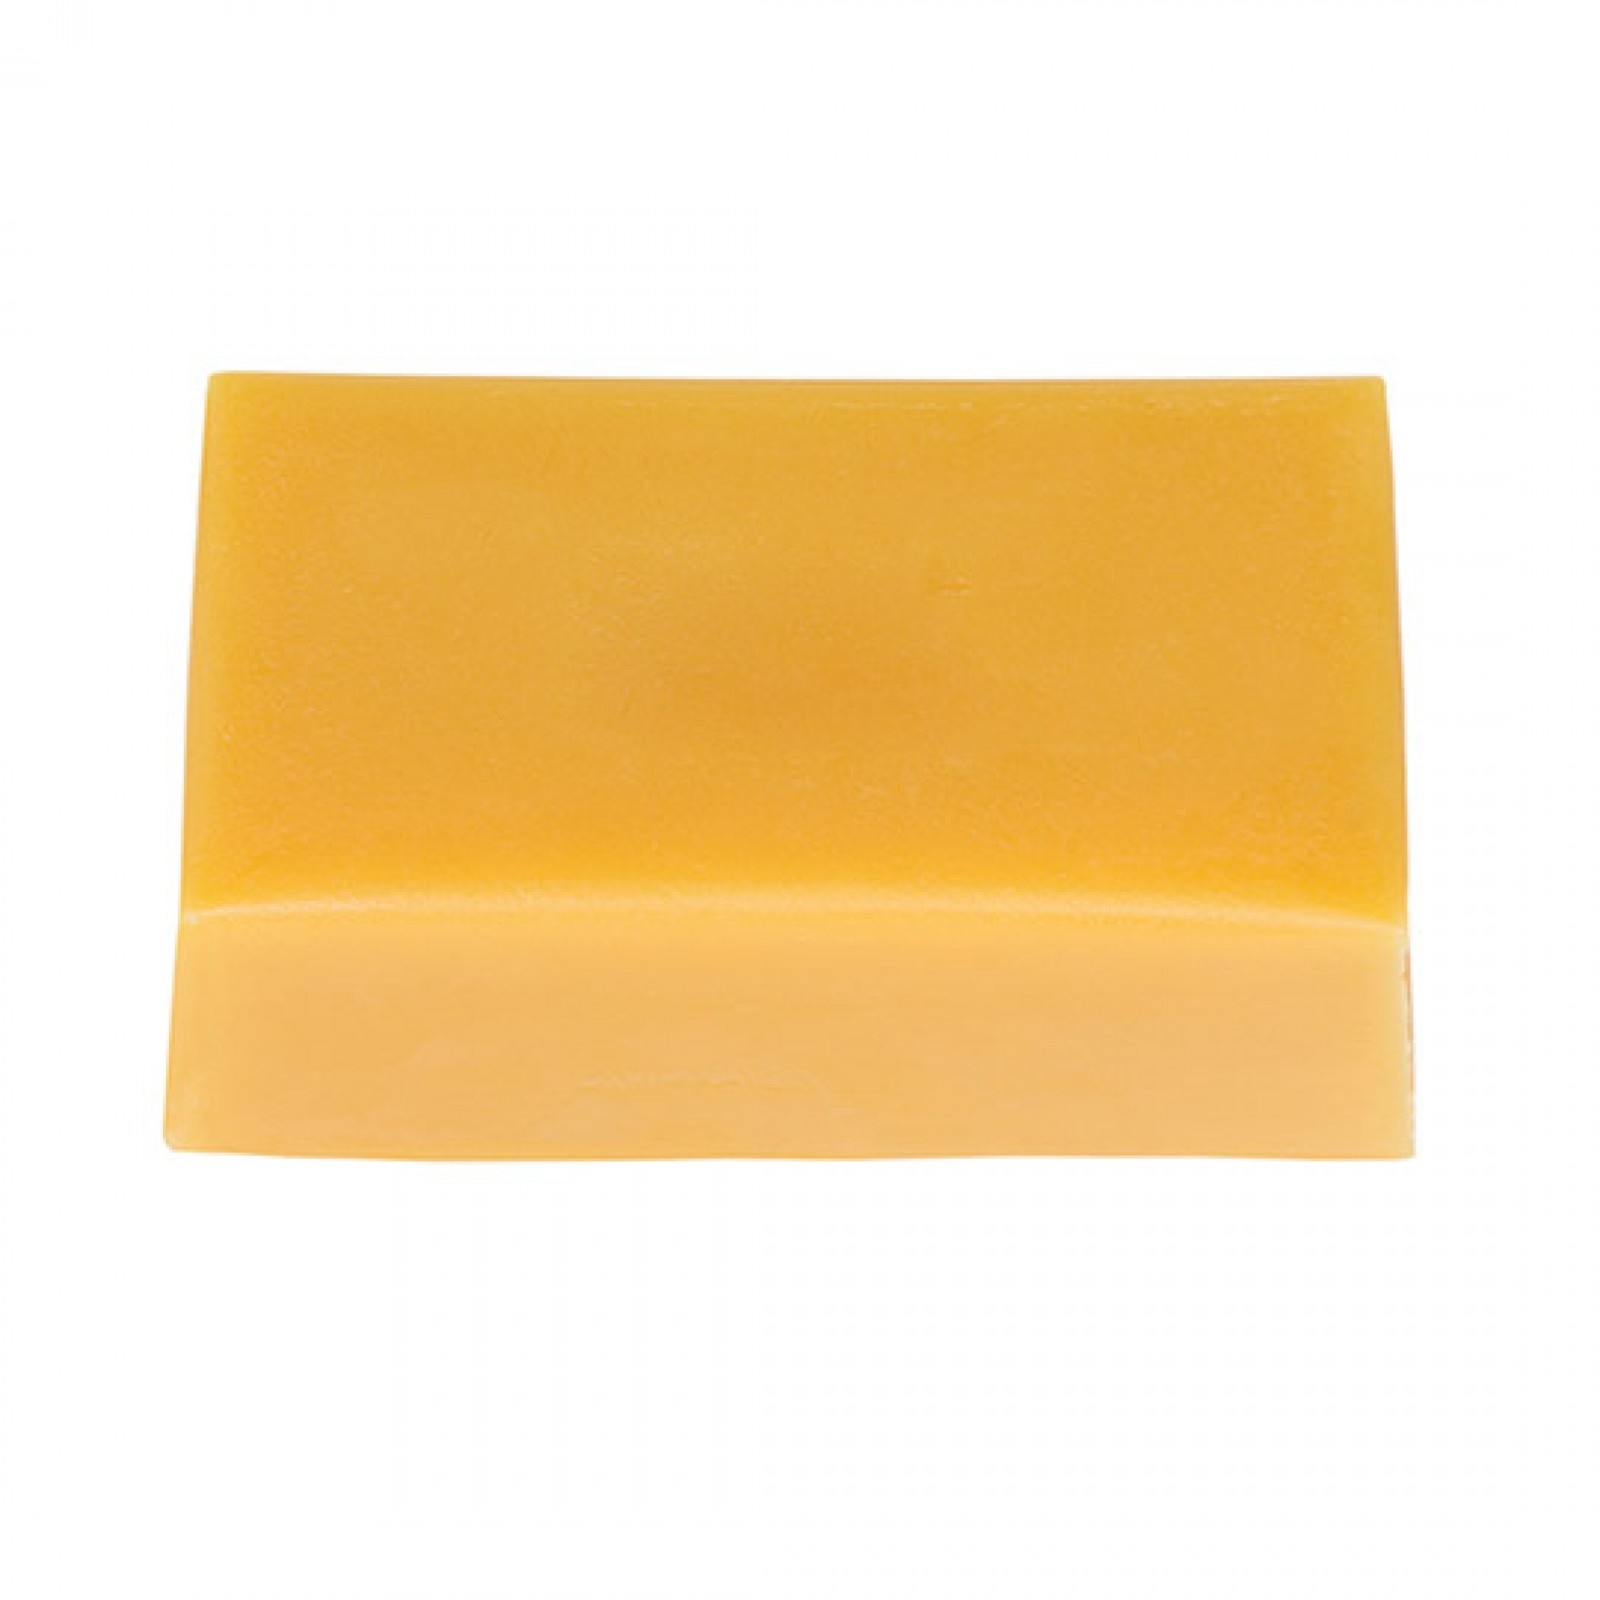 Beeswax - 1 pound block